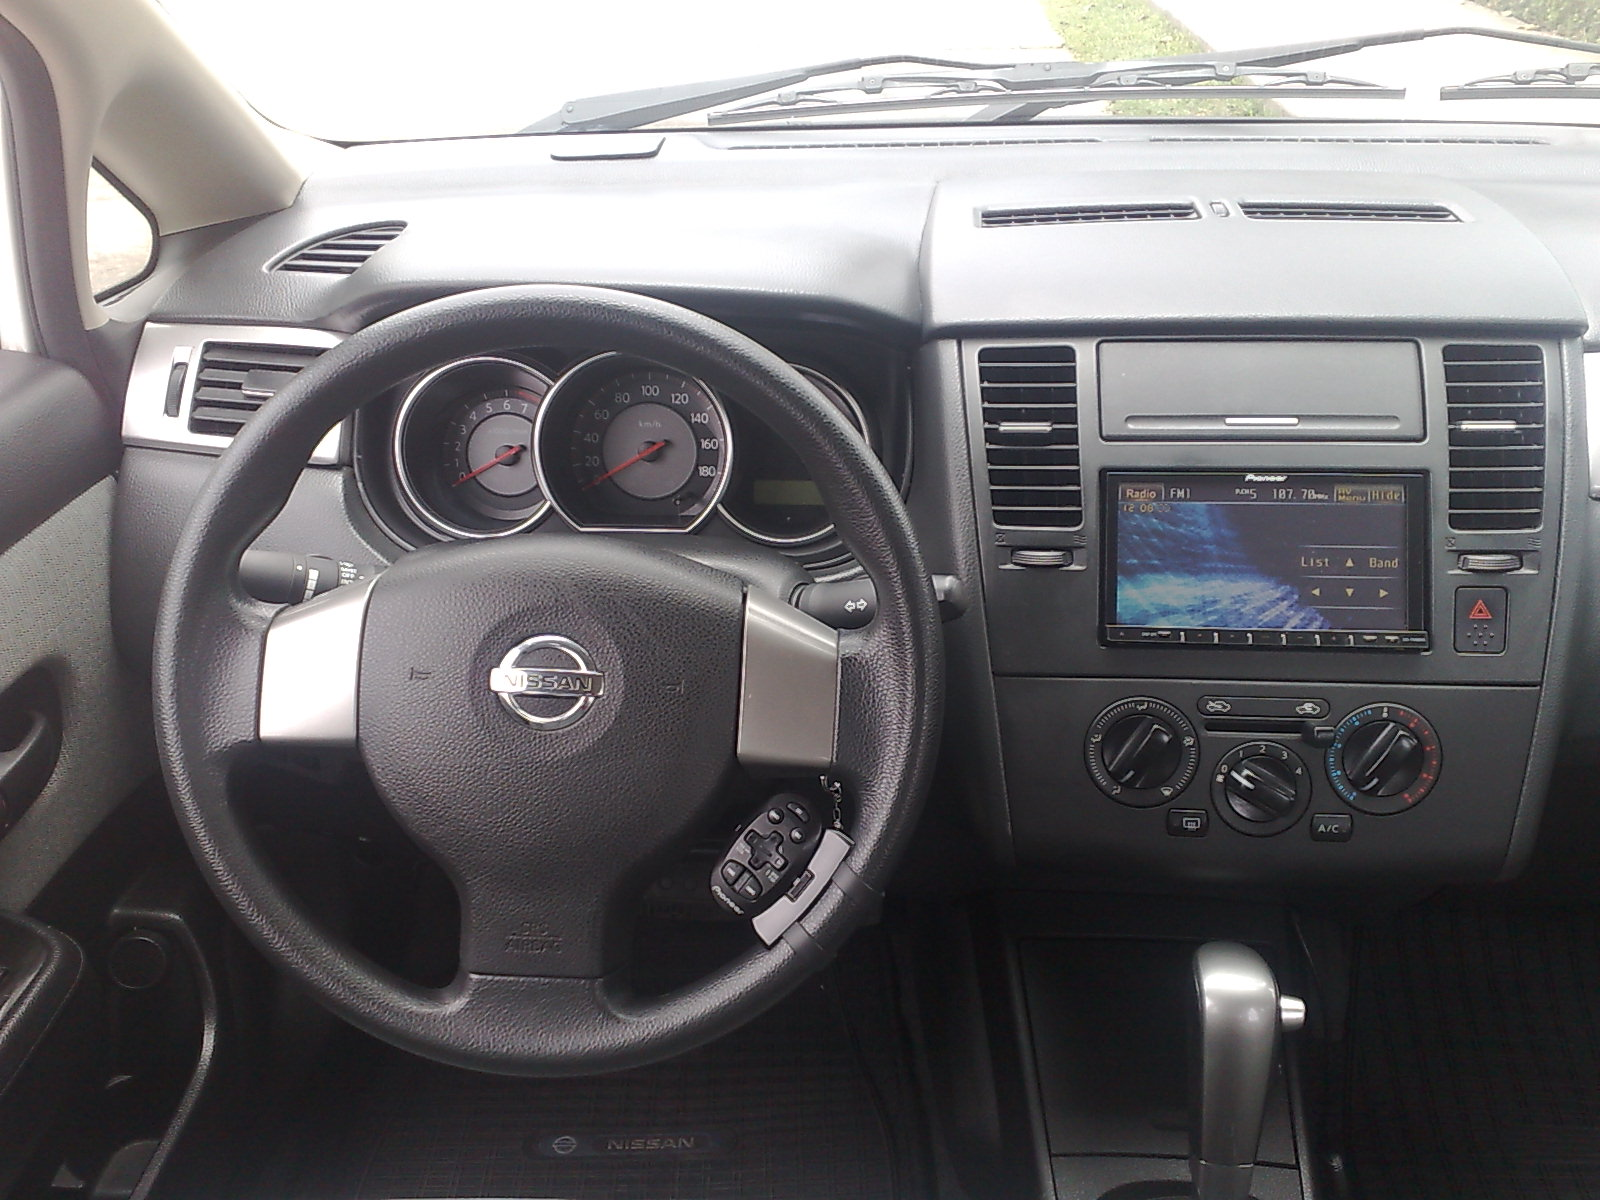 2008 Nissan Tiida Sedan Pictures Information And Specs